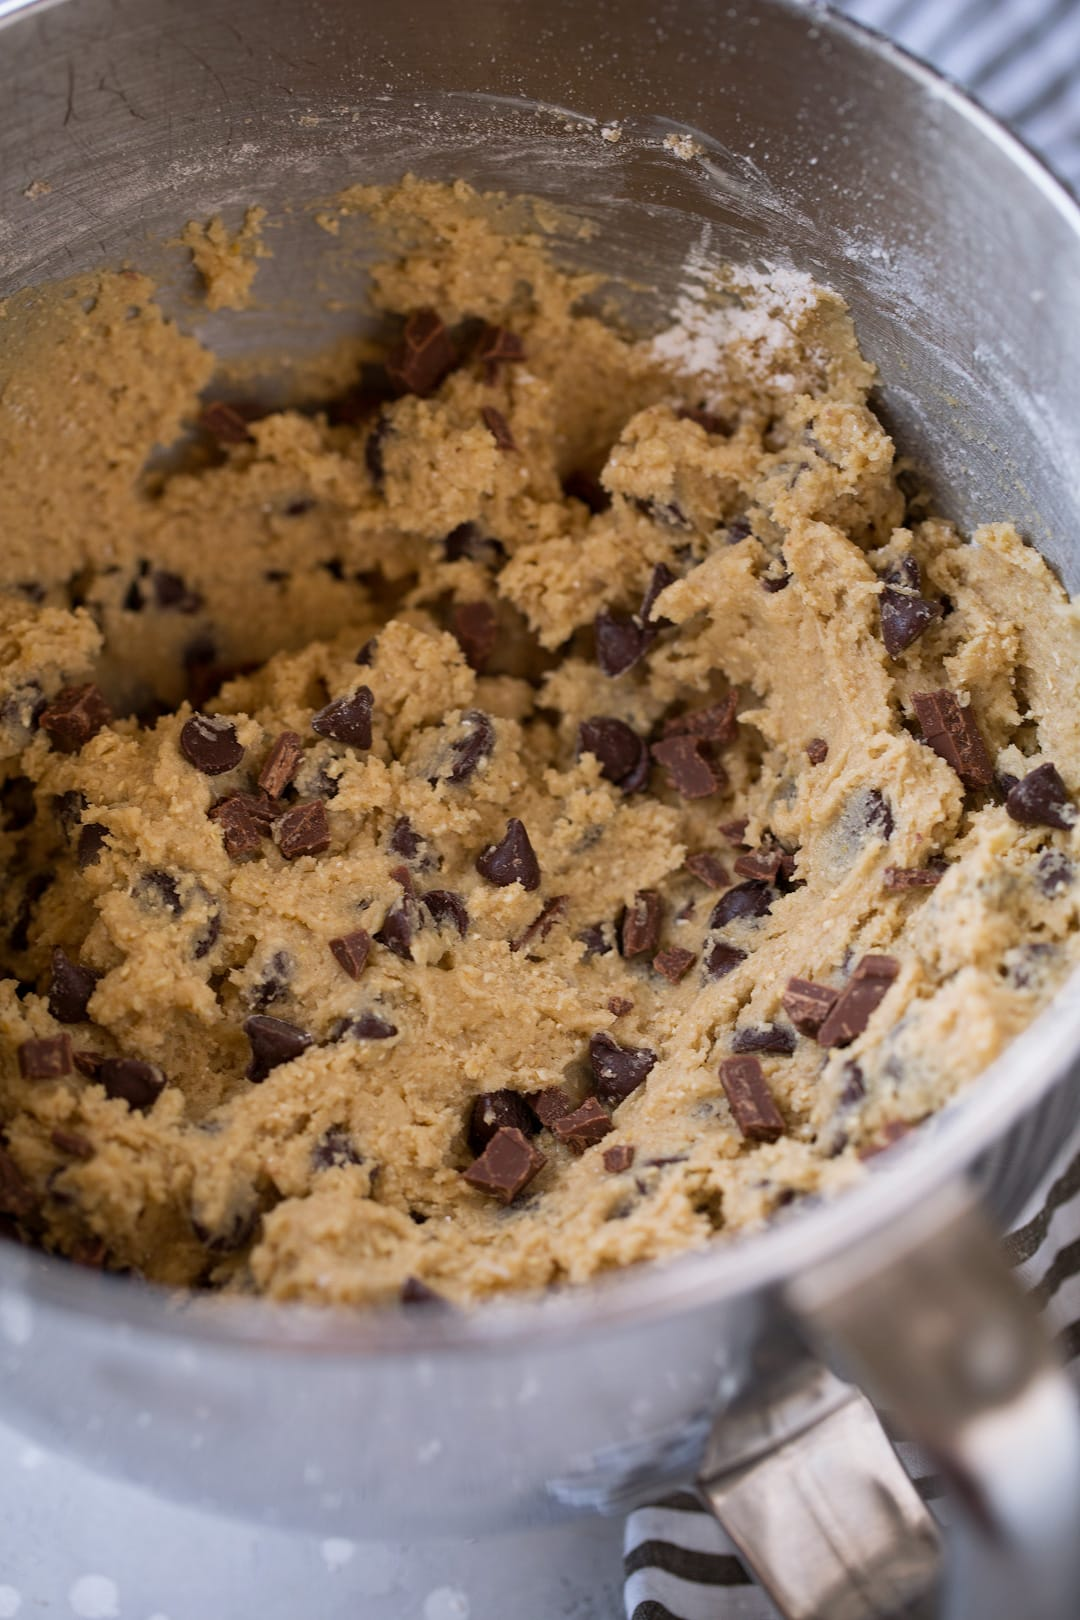 Chocolate chip cookie dough in mixing bowl.